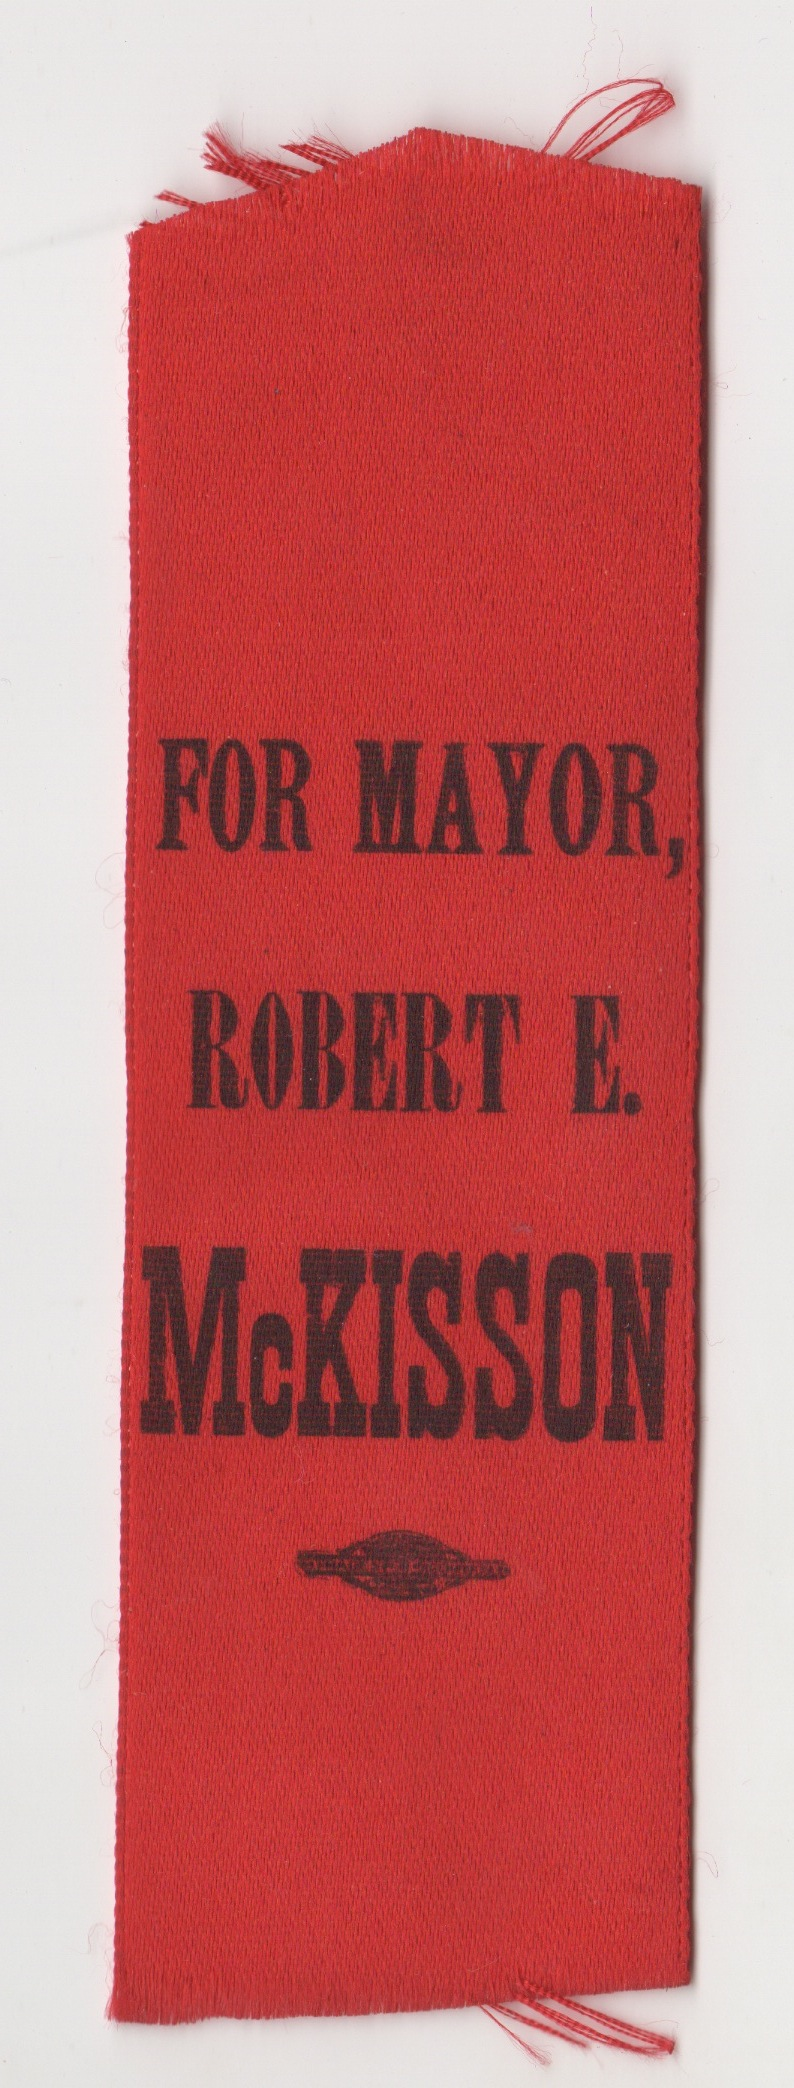 OHMayor-McKISSON02.jpeg